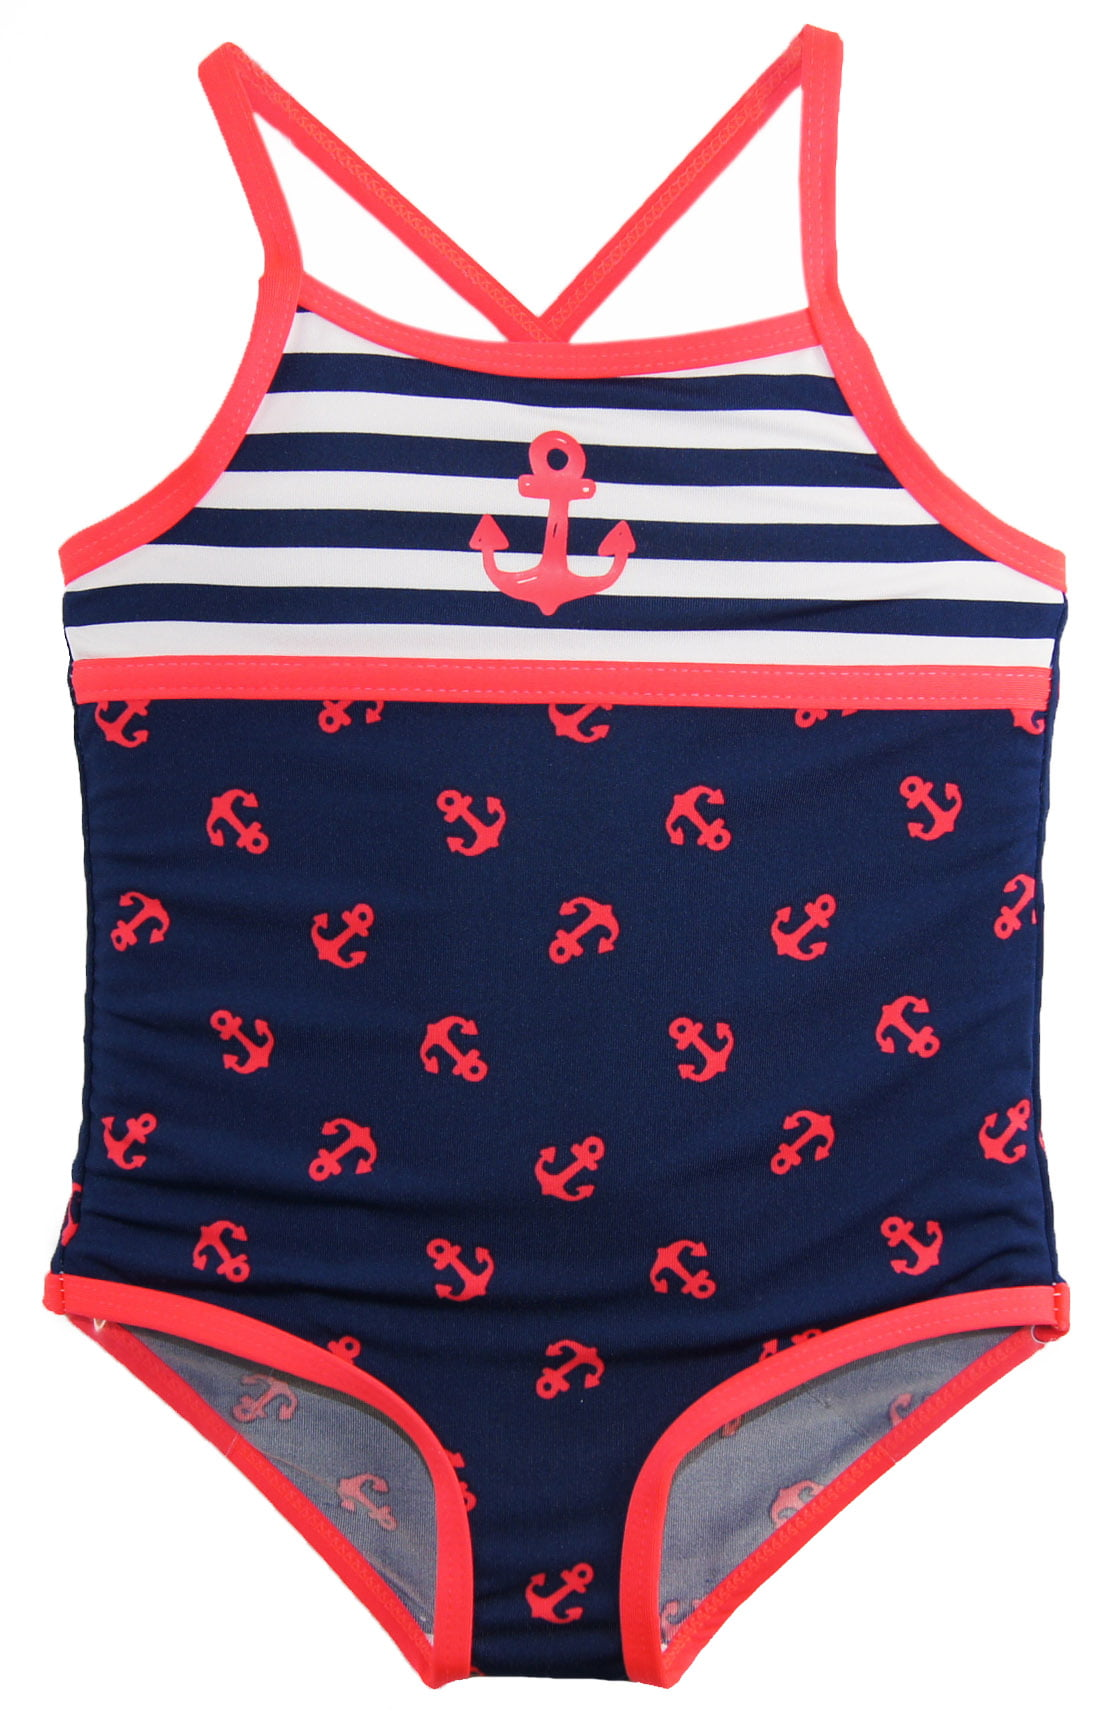 49975a19d9 Wippette Baby Girls Anchor Once Piece Swimsuit Beach Terry Dress Cover Up  Set - Walmart.com